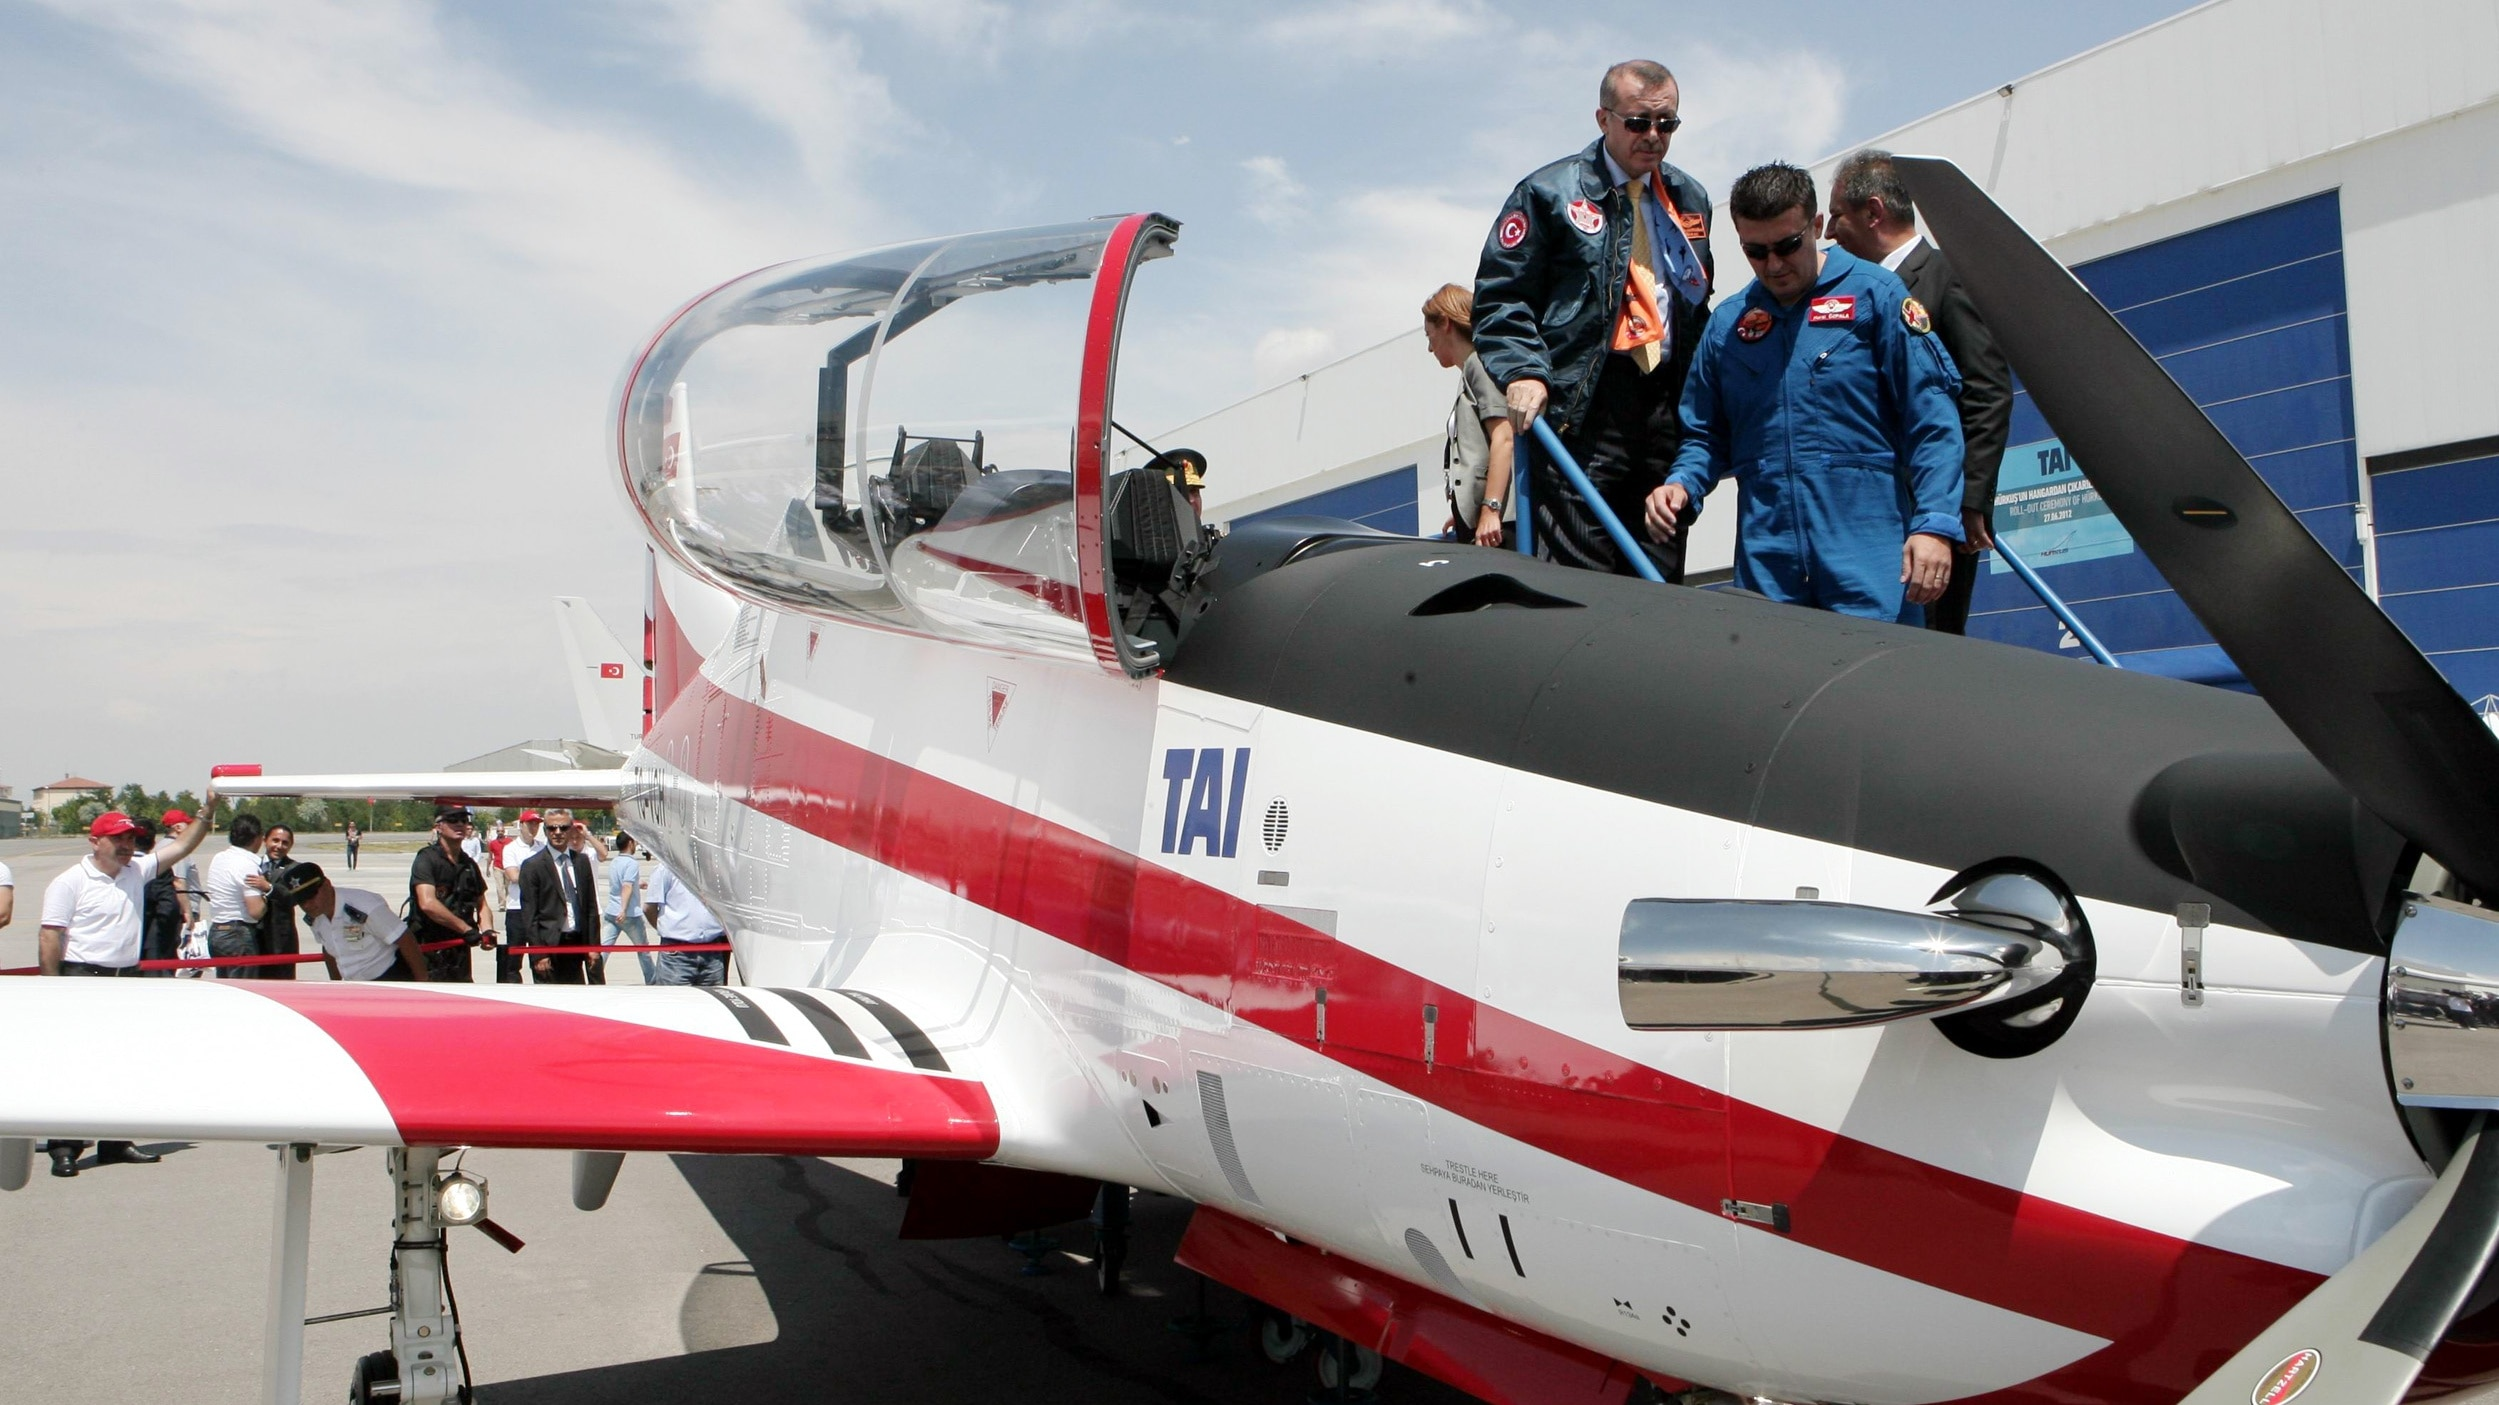 Turkey to replace T-38 aircraft with locally built armed jet